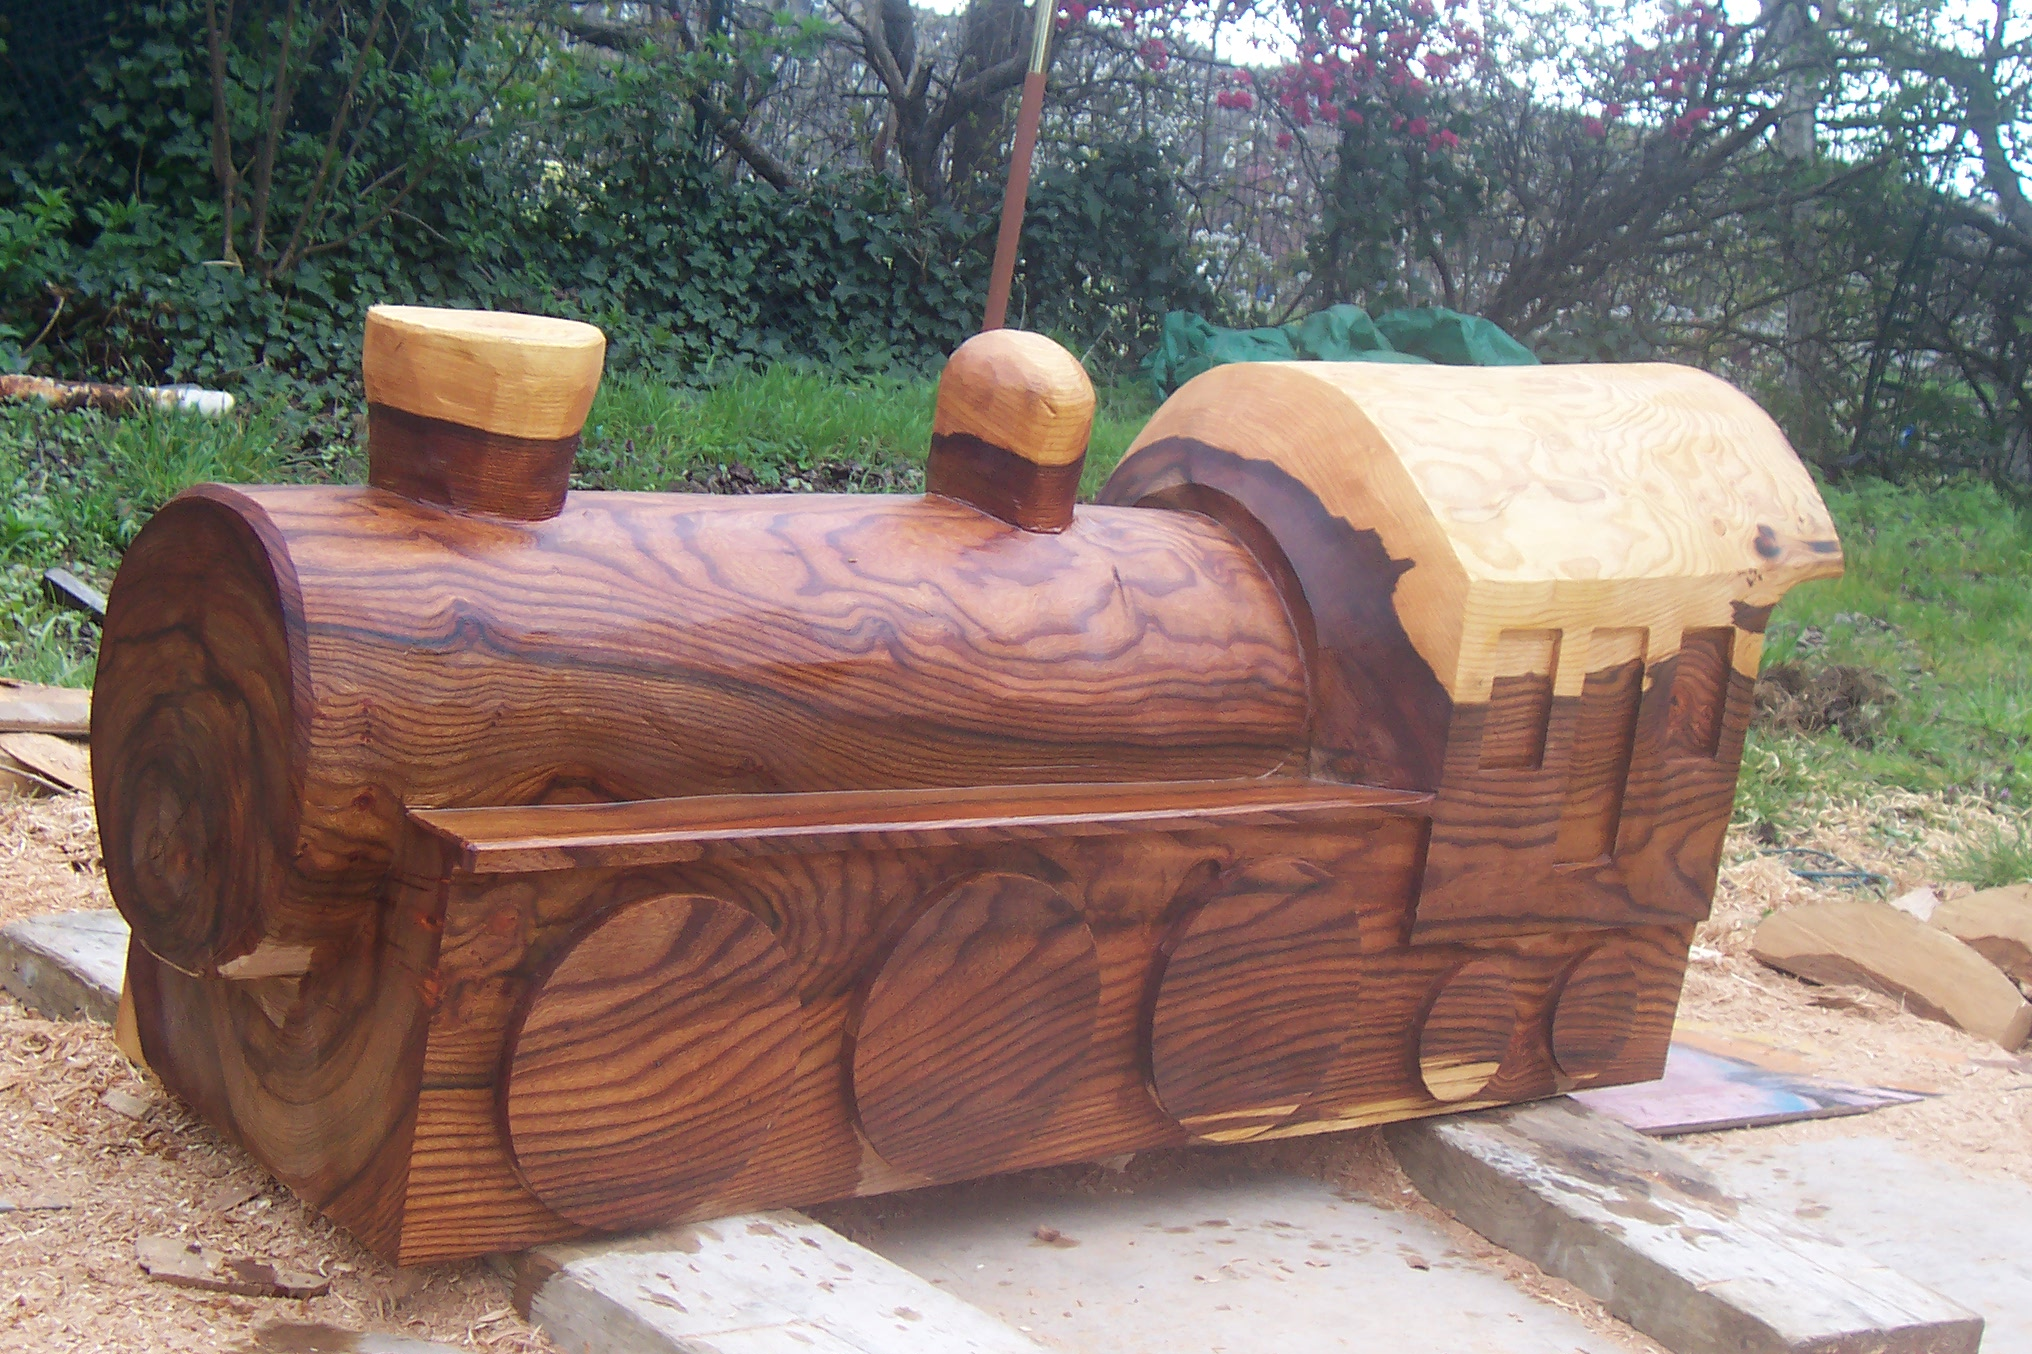 train bespoke carved wood seating wildchild designs